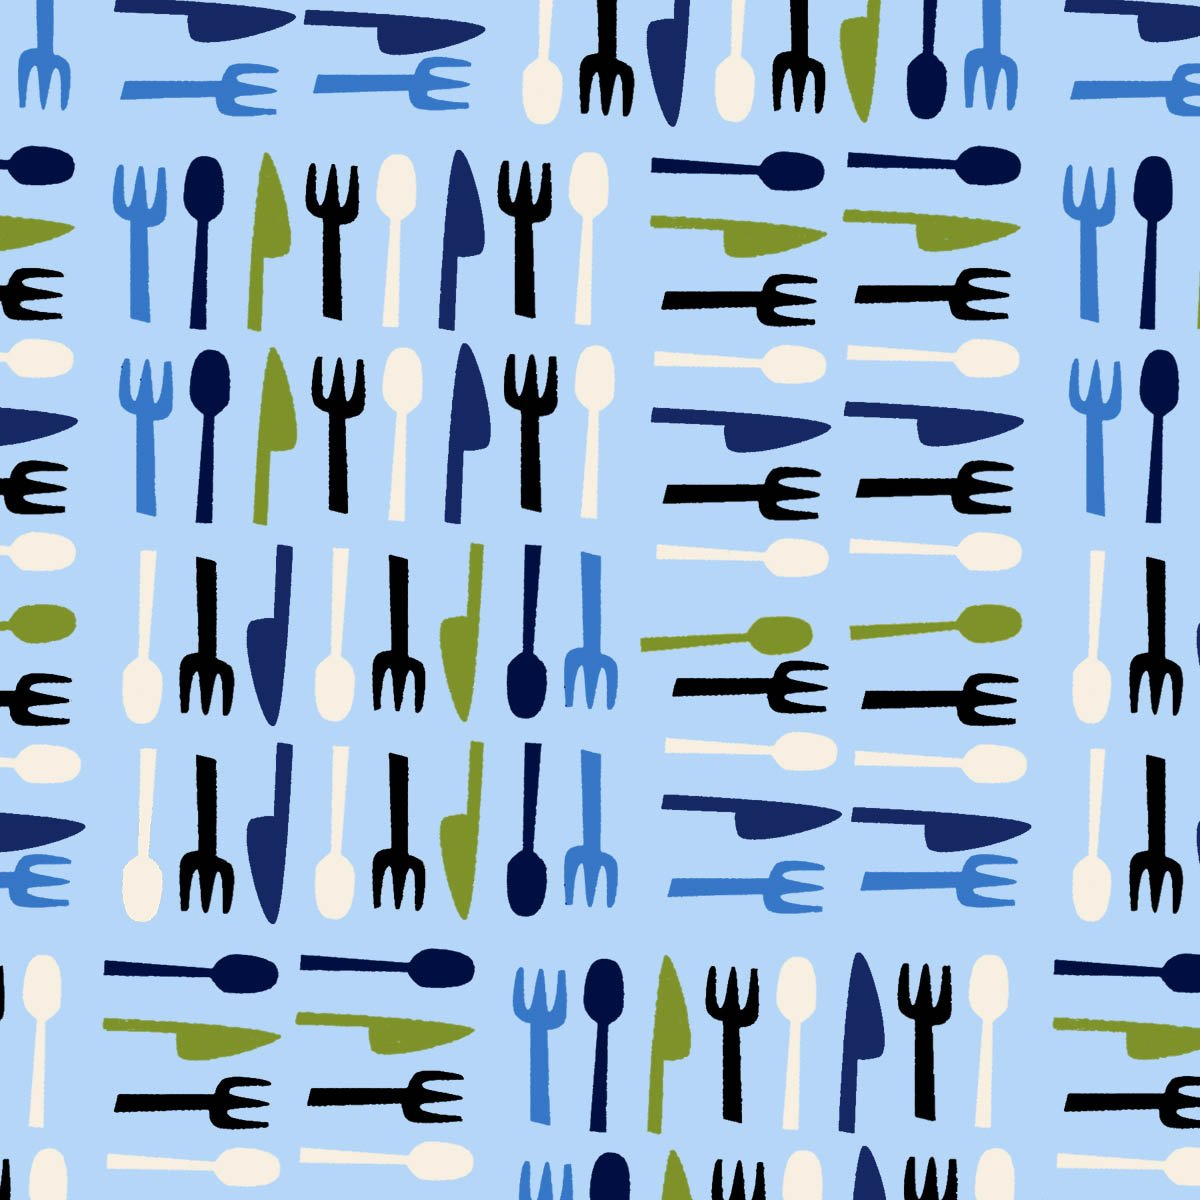 Open 24 Hours - knife, spoon and fork sets